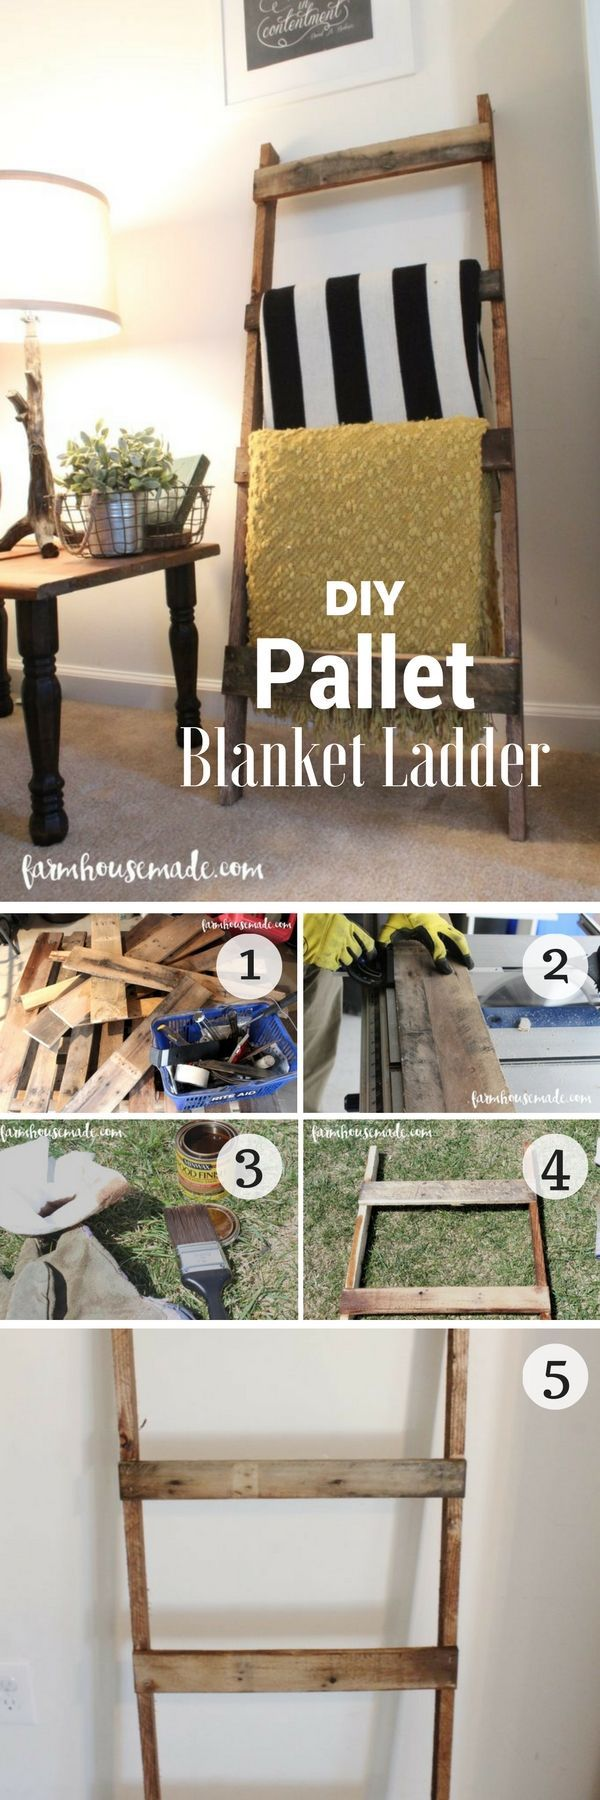 18 easy diy pallet project ideas for rustic home decor blanket ladder pallet wood and pallets